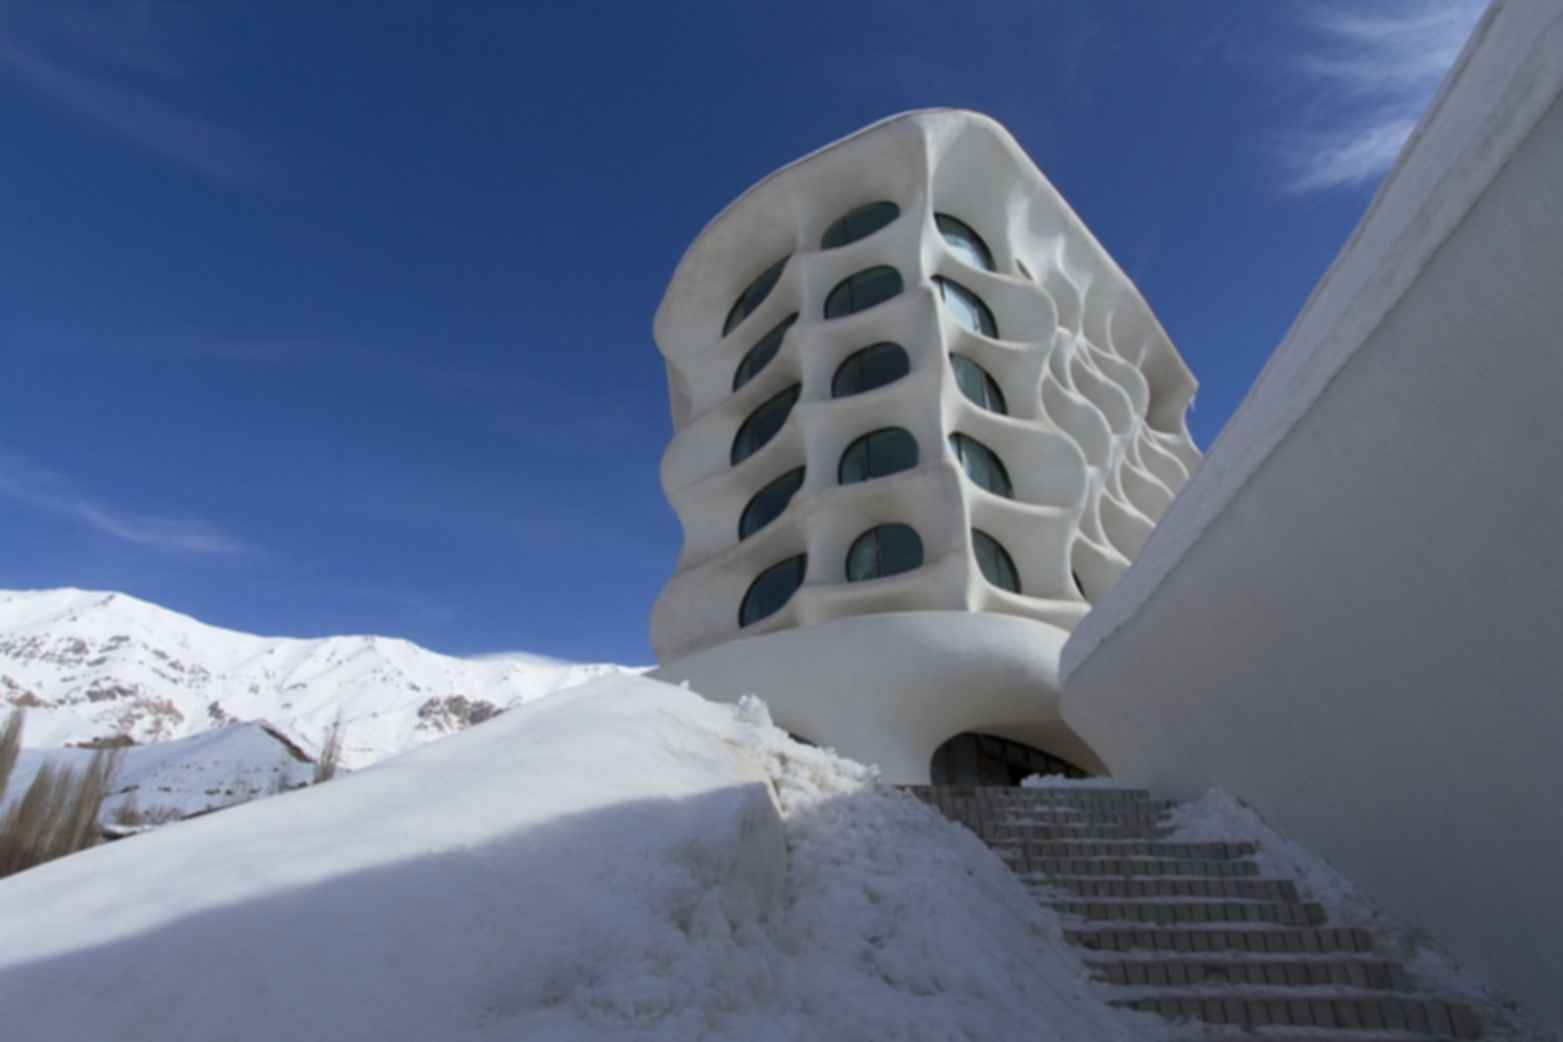 Barin Ski Resort - Exterior/Entrance